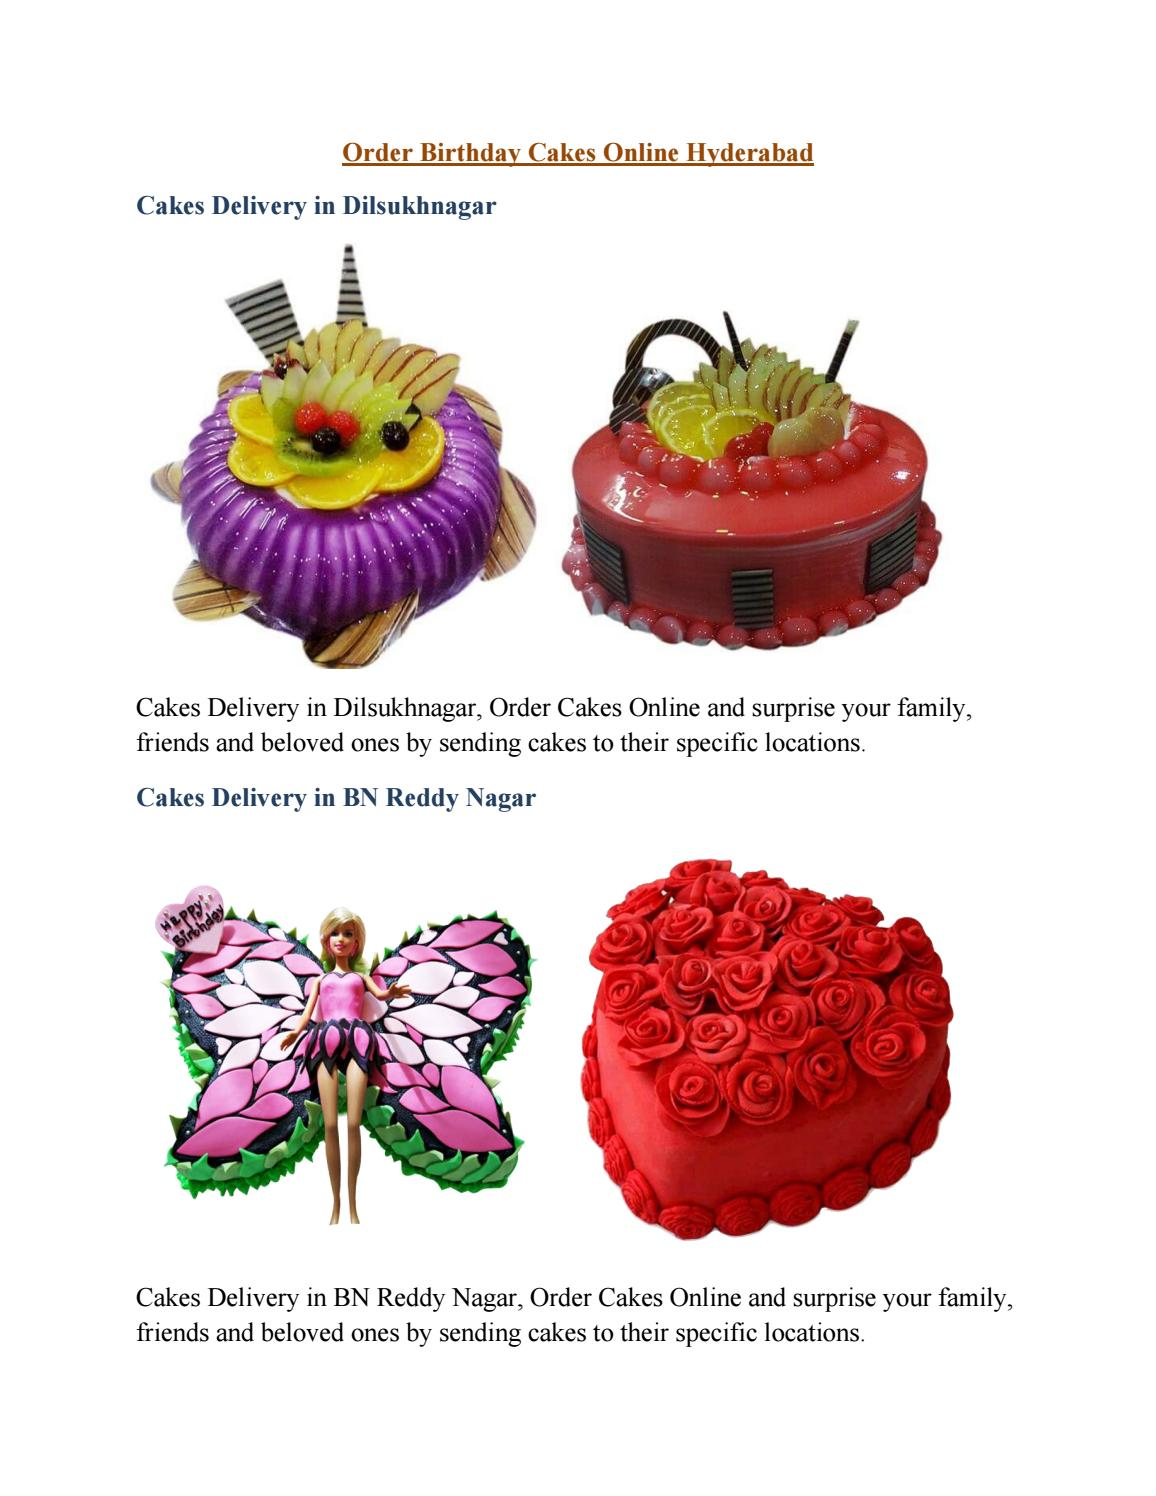 Online Cake Delivery In Hyderabad Bestbake By Bestbake Issuu